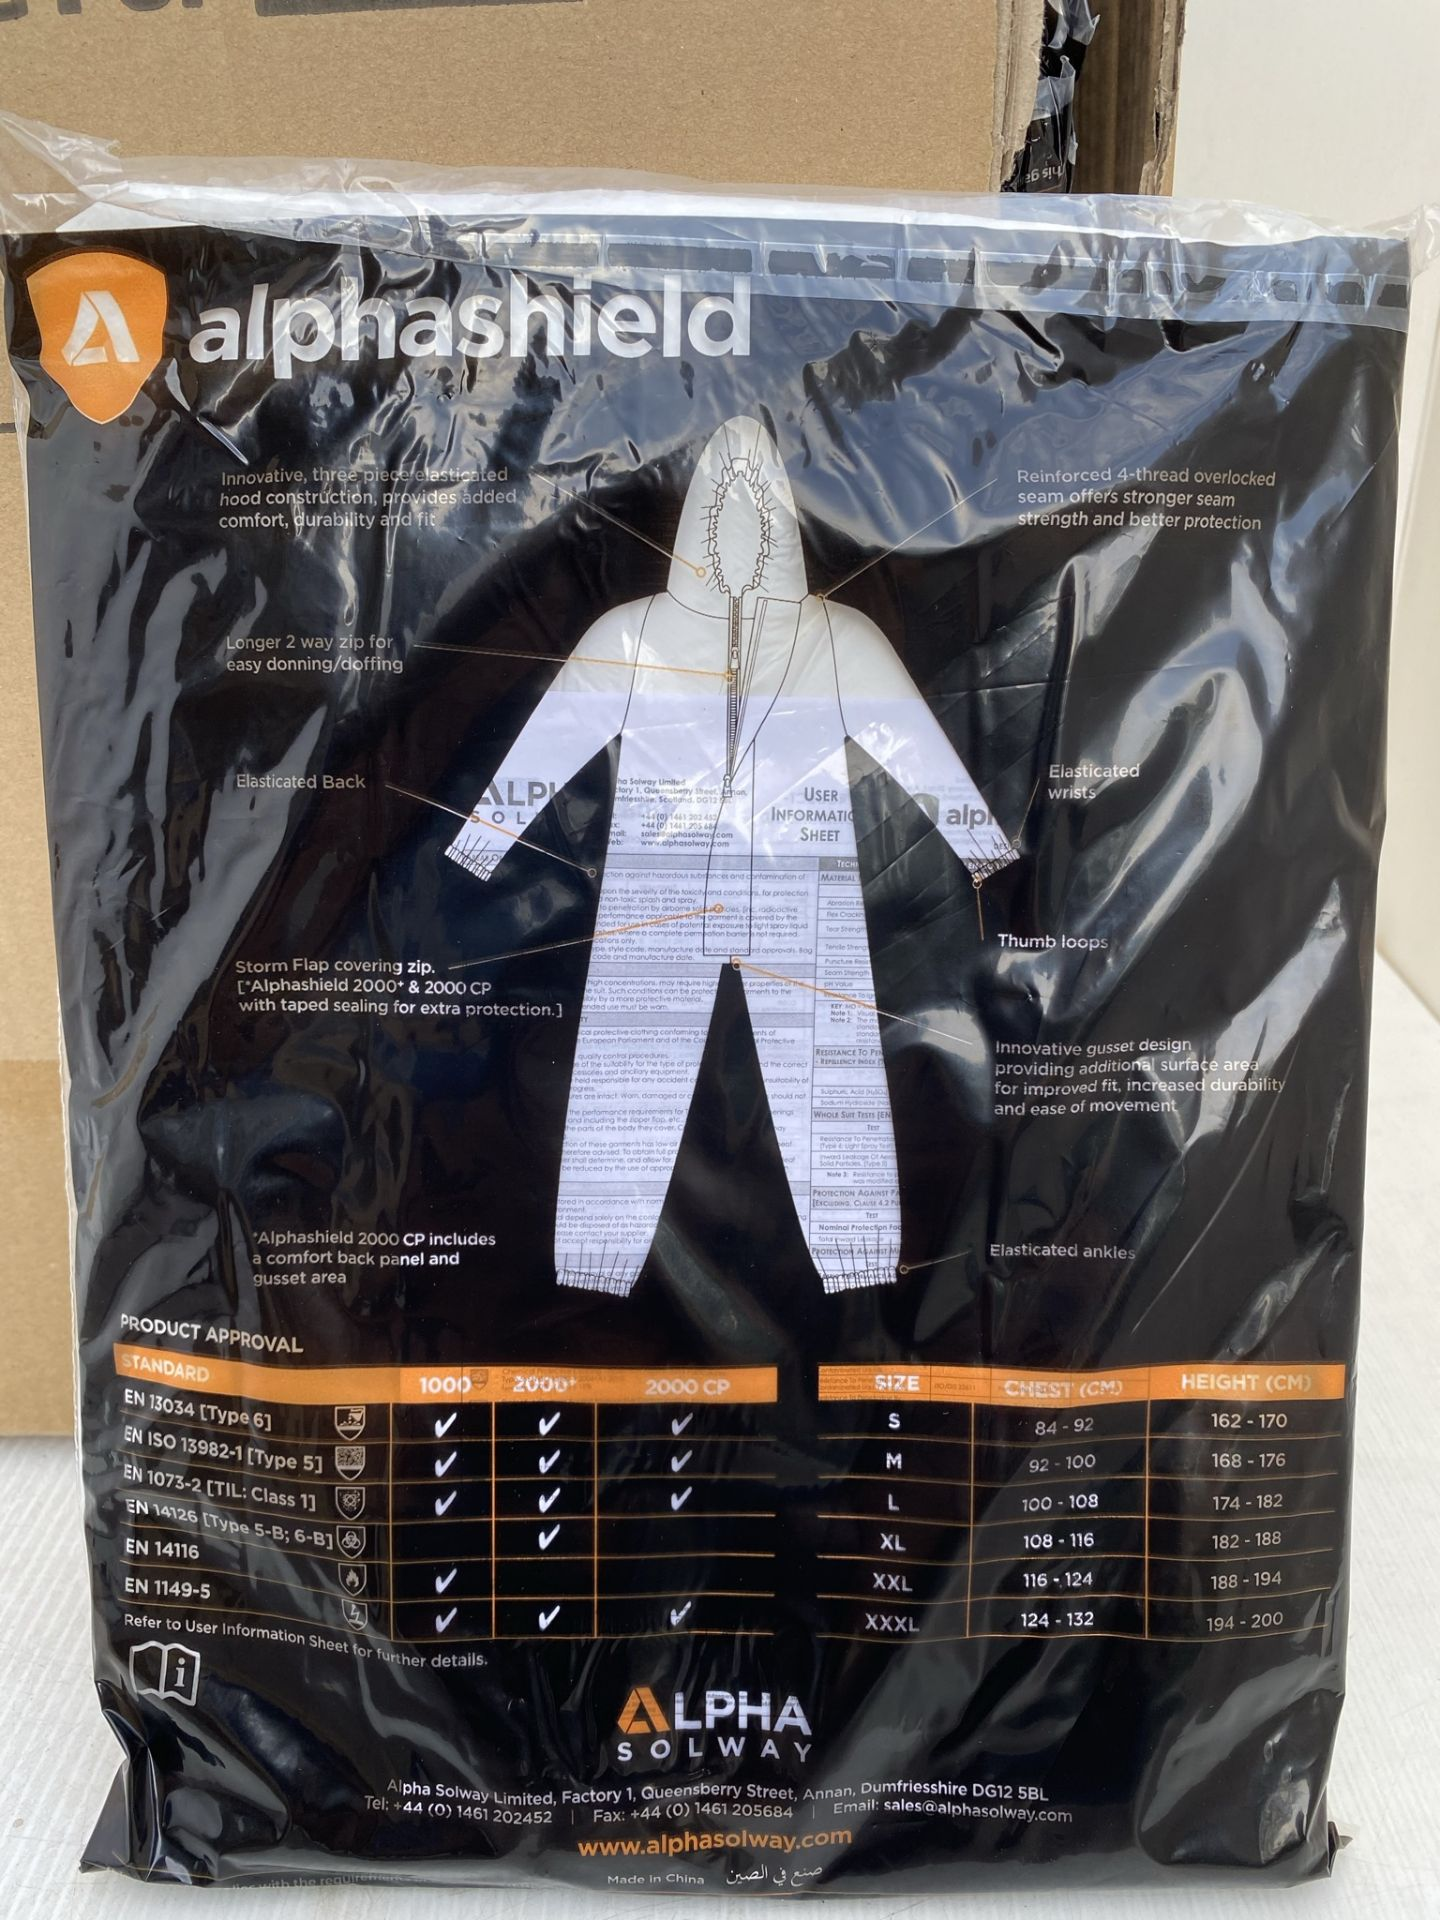 50 x Alpha Solway - Alphashield 2000+ protective S2BH+ white oversuits - Assorted sizes, - Image 3 of 3